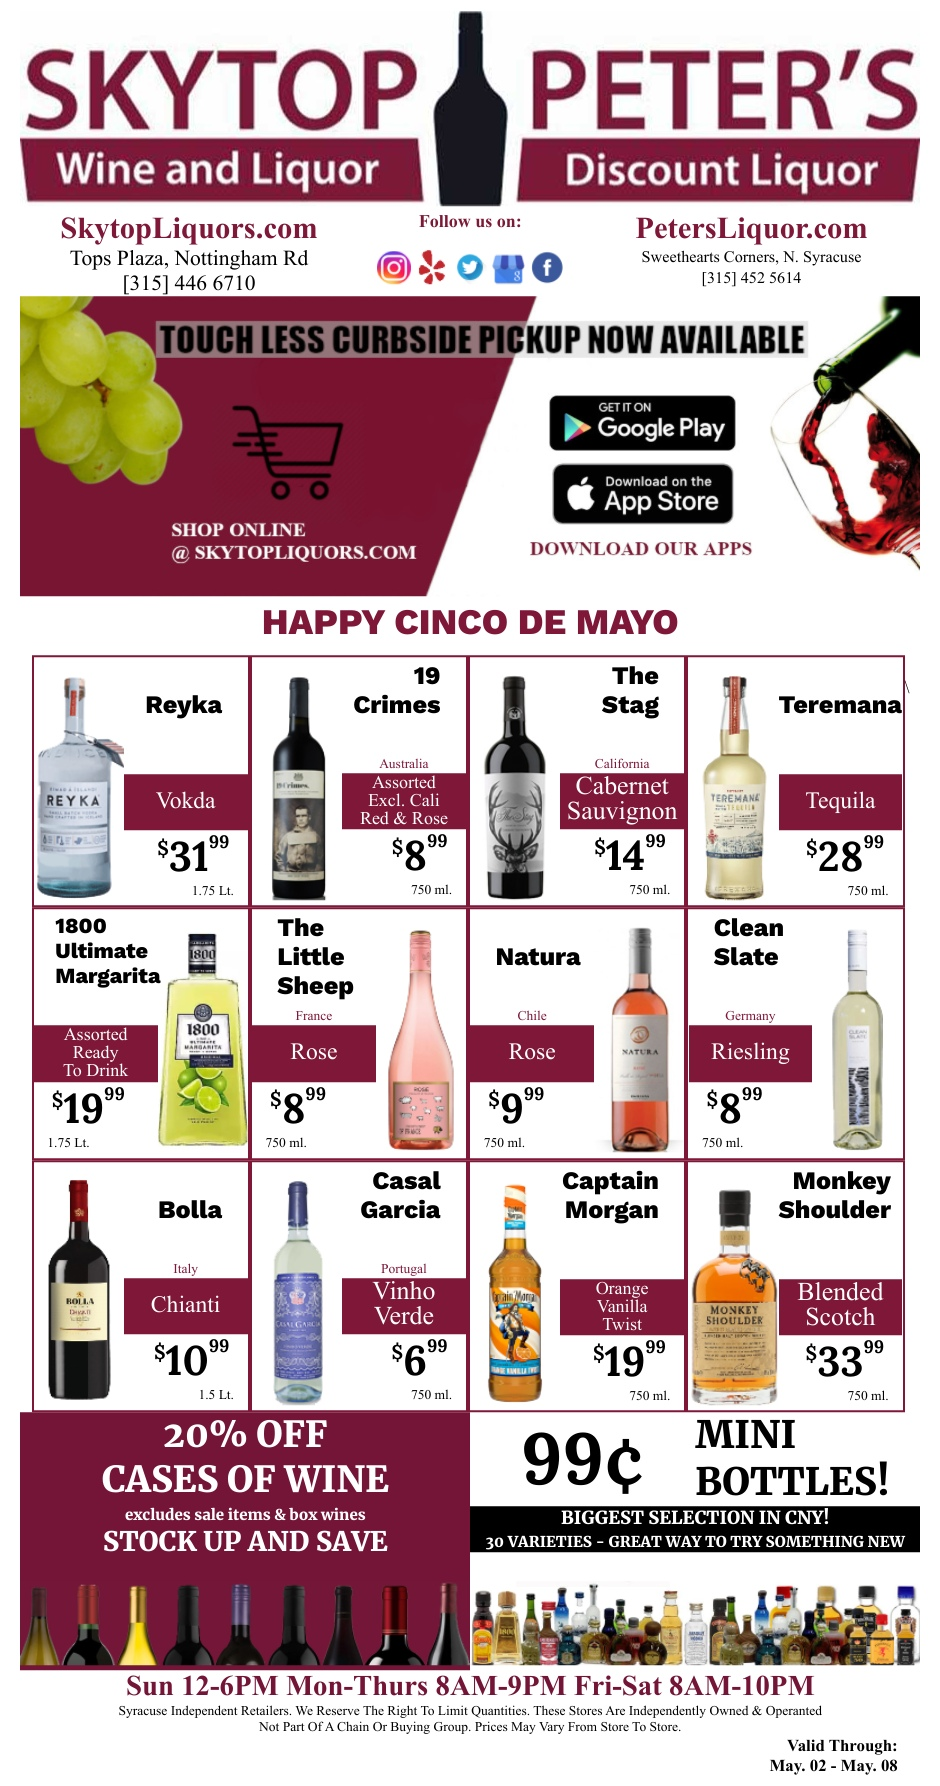 Wine and liquor sale coupons syracuse new york